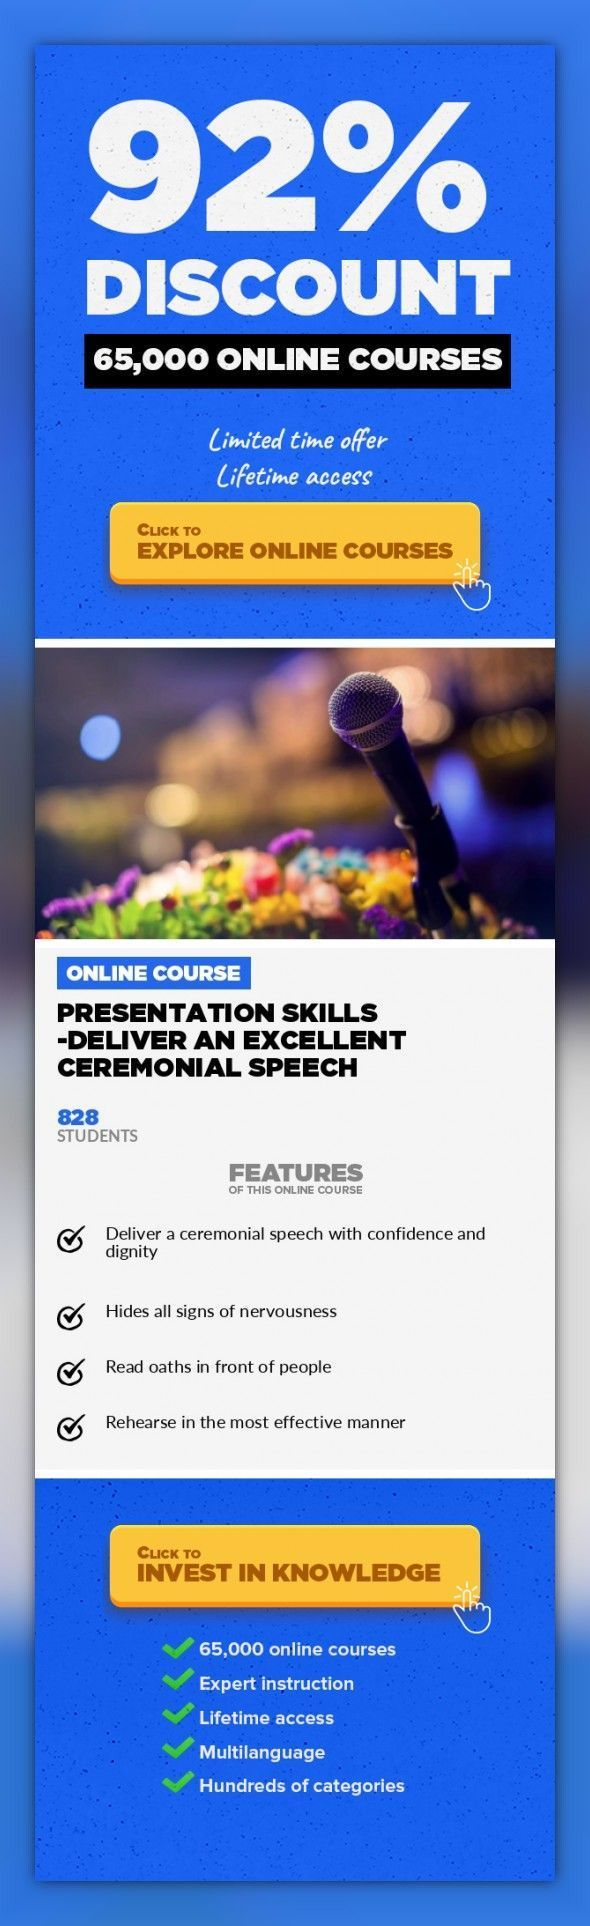 38 best ggs grade 2 images on pinterest grade 2 community helpers presentation skills deliver an excellent ceremonial speech communications business onlinecourses onlinetrainingexercise onlinecoursesideas presentation fandeluxe Image collections